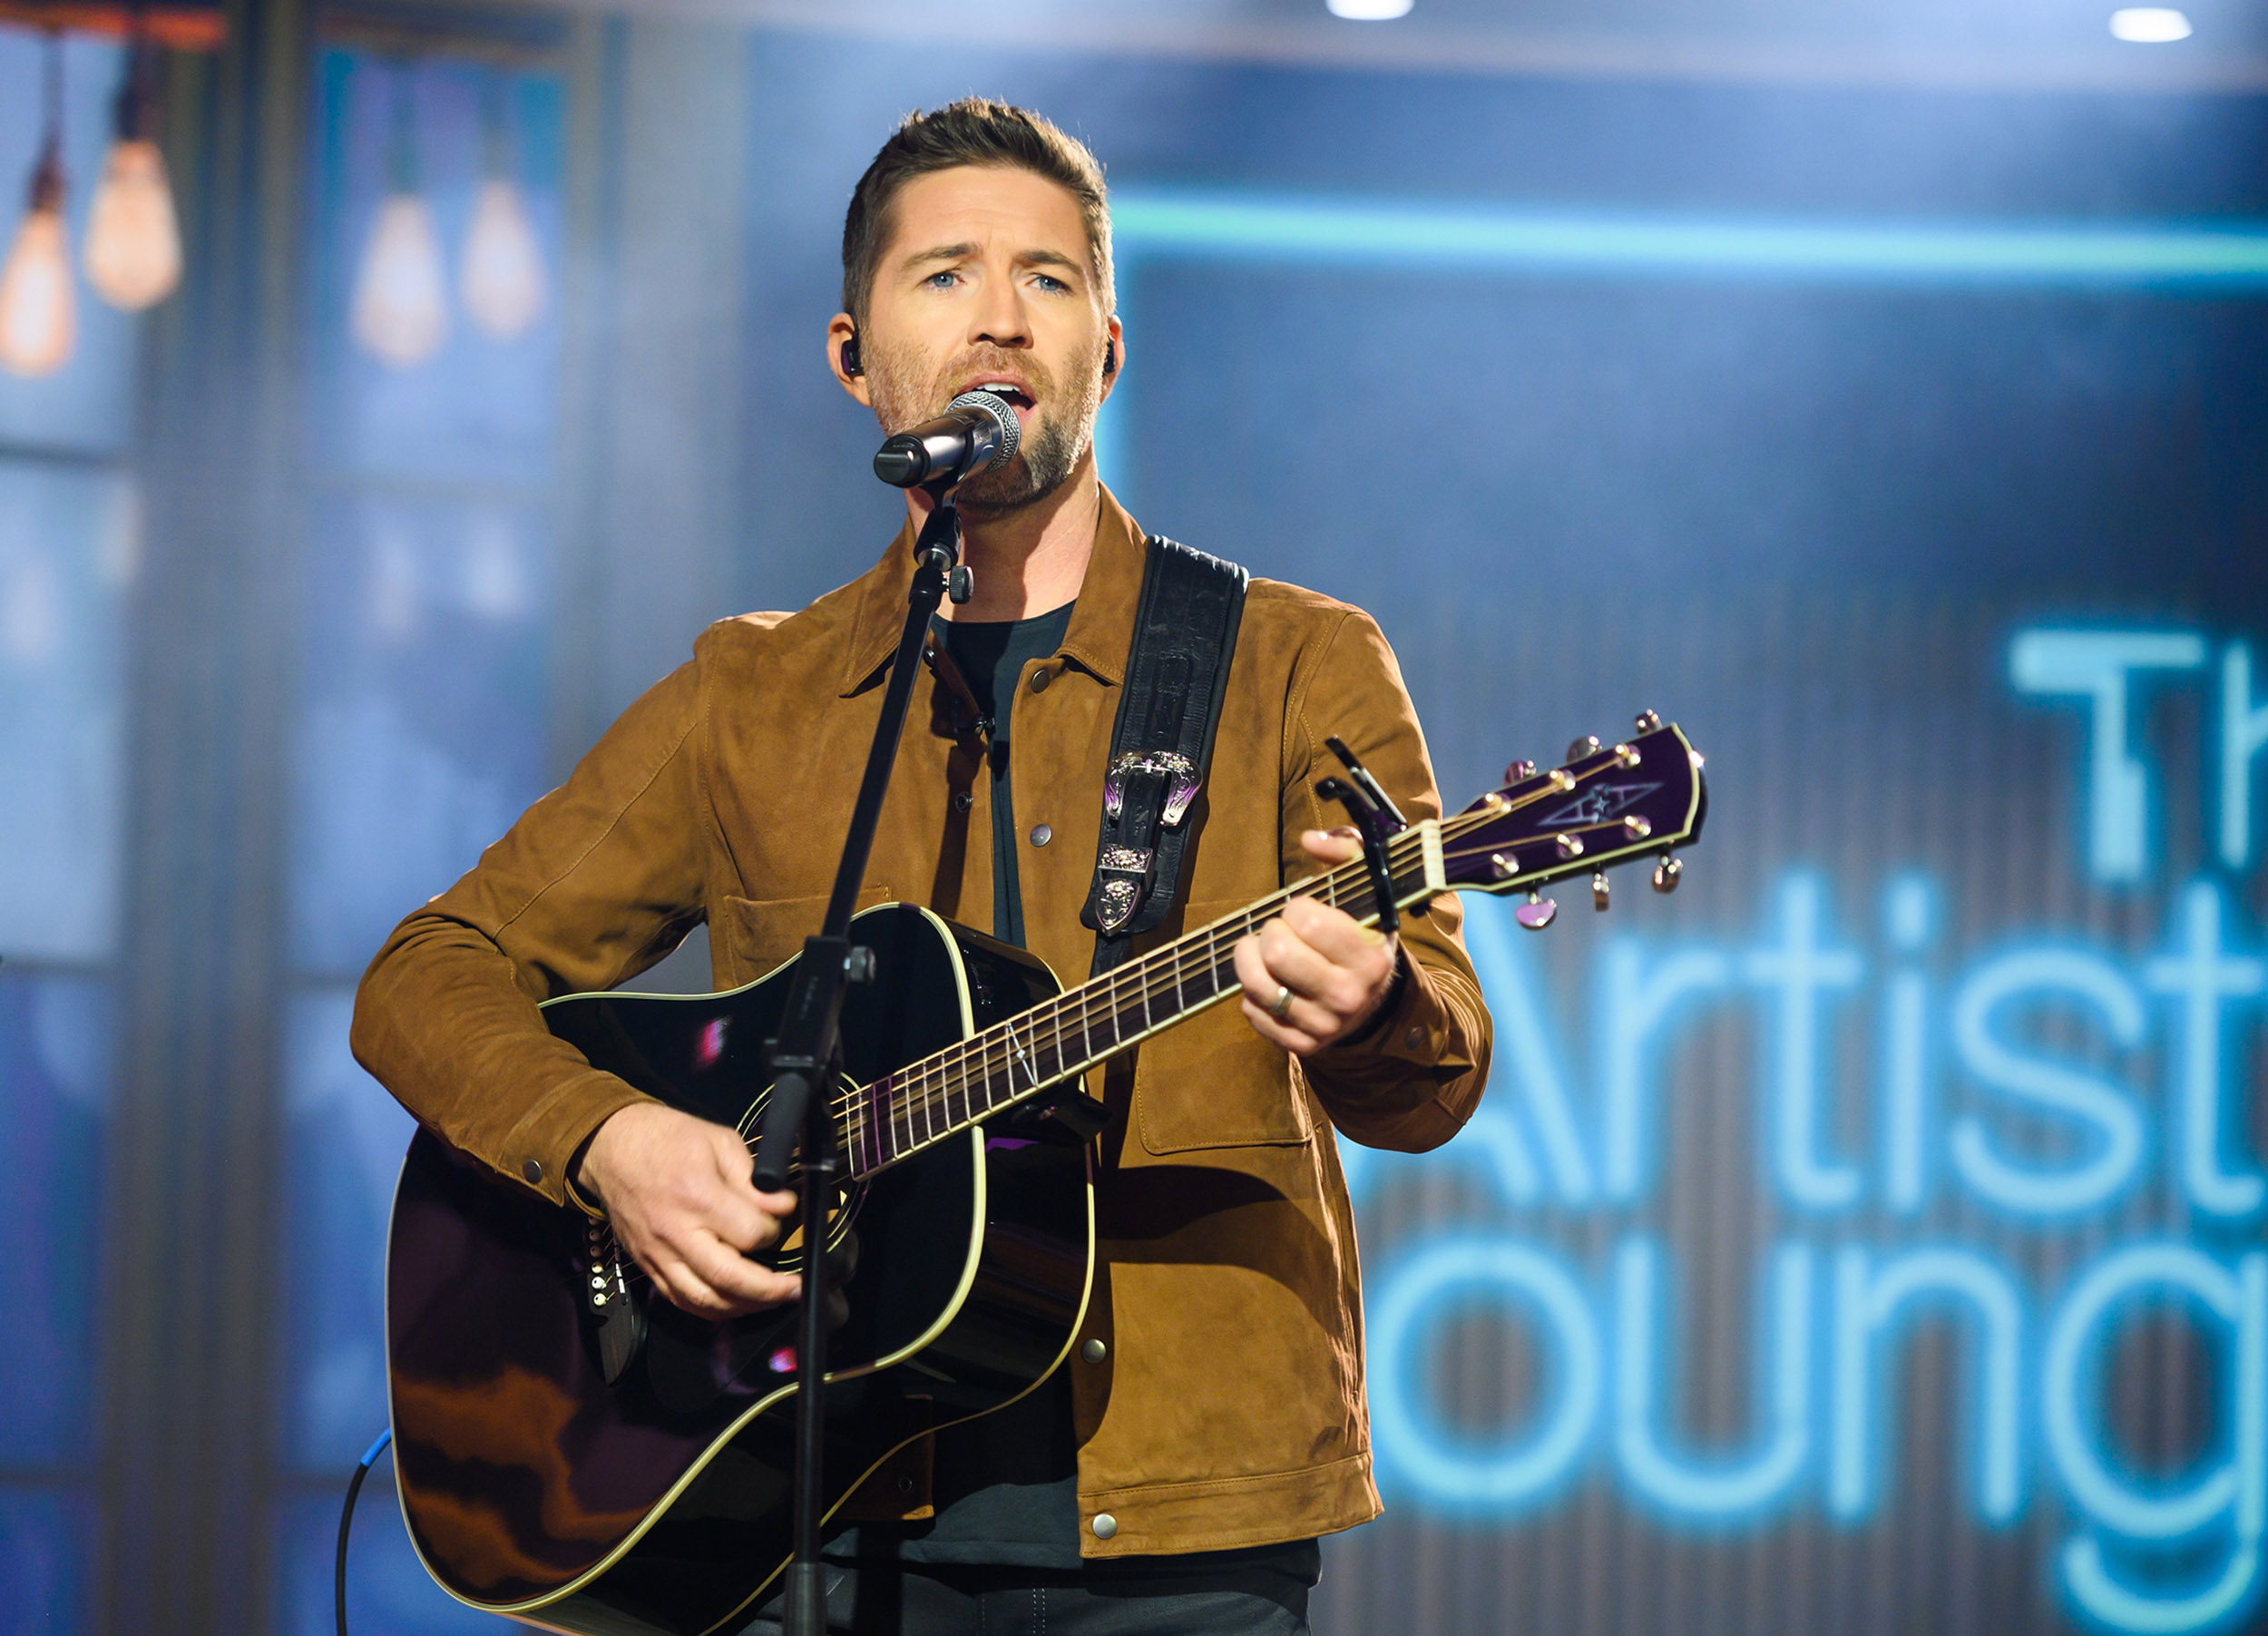 One-dead,-several-injured-after-bus-carrying-singer-Josh-Turner's-road-crew-crashes